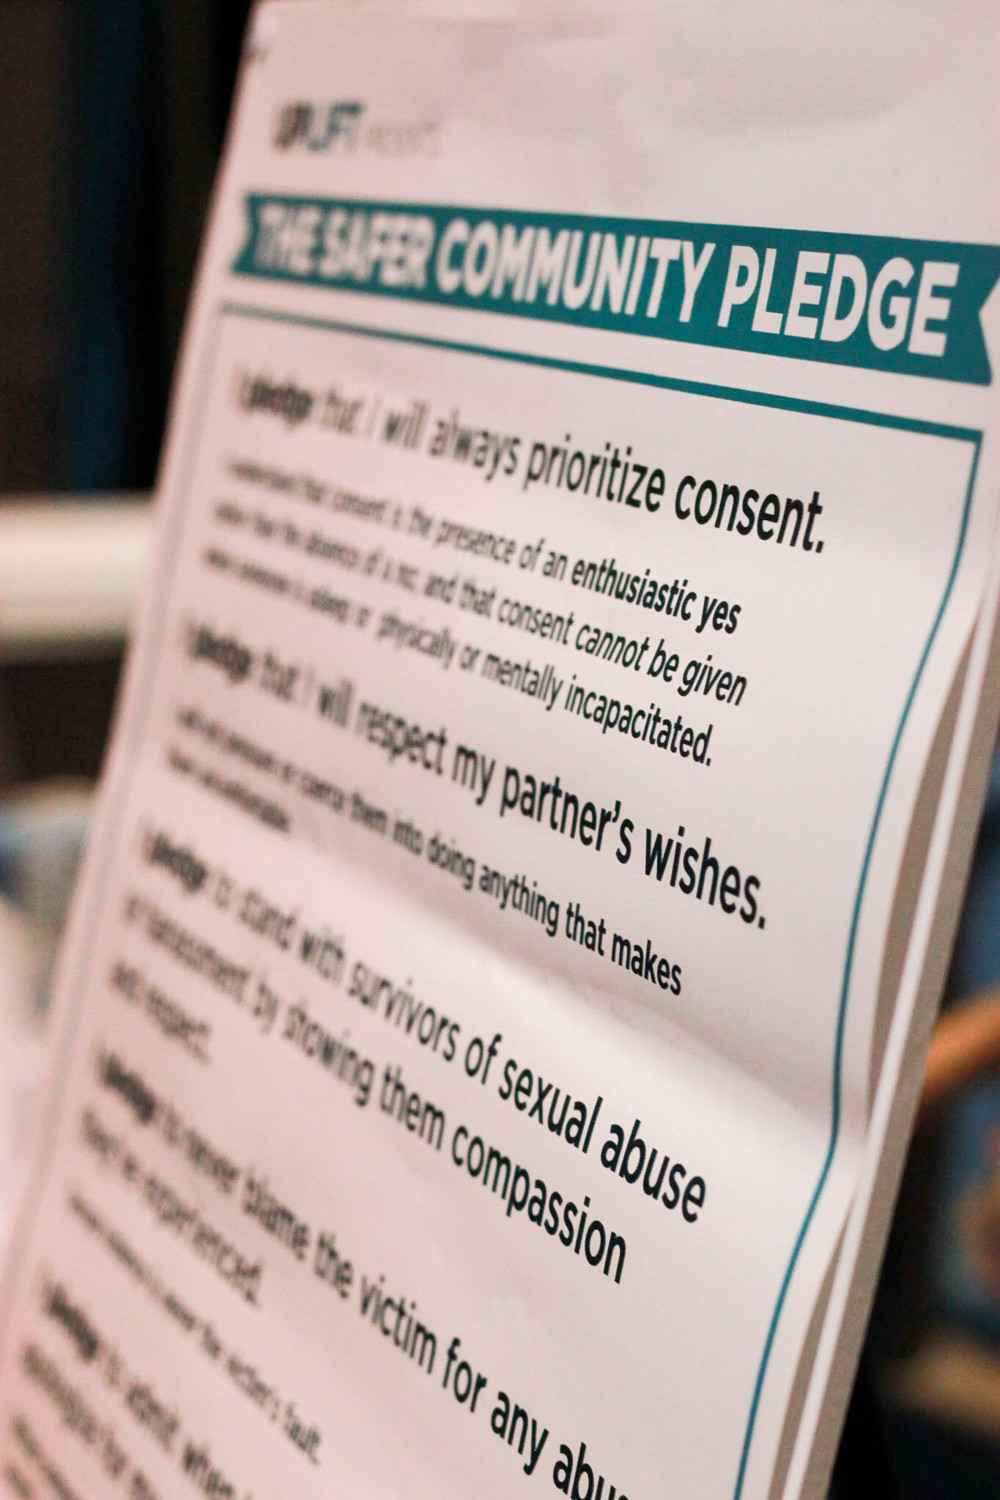 Uplift's 'Safer Community Pledge' offers ways for people to build a safer, more inclusive community.